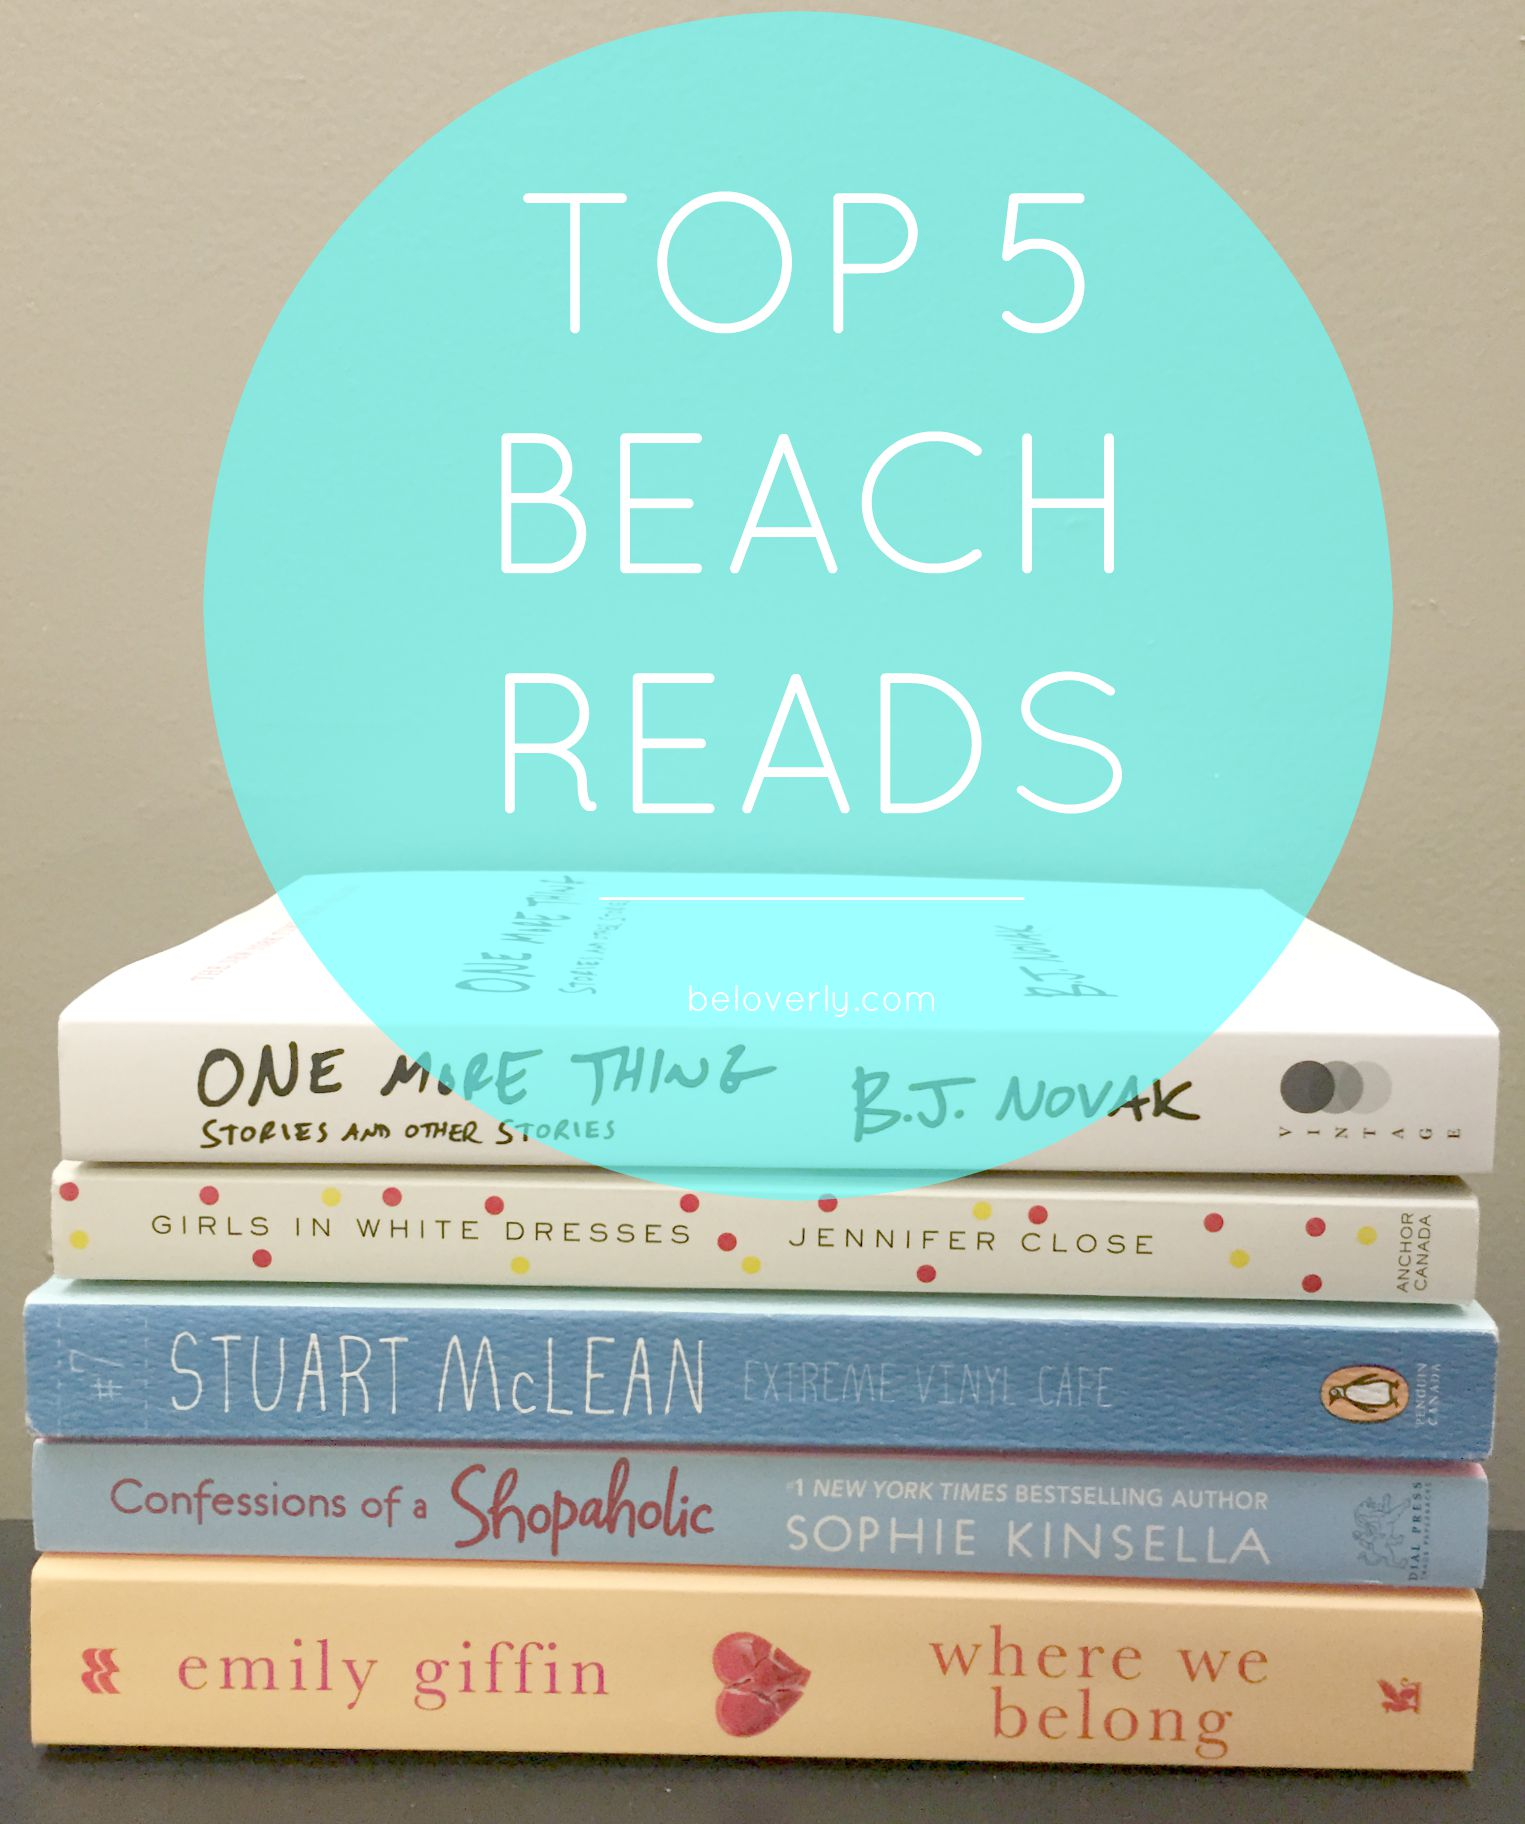 top5beachreads